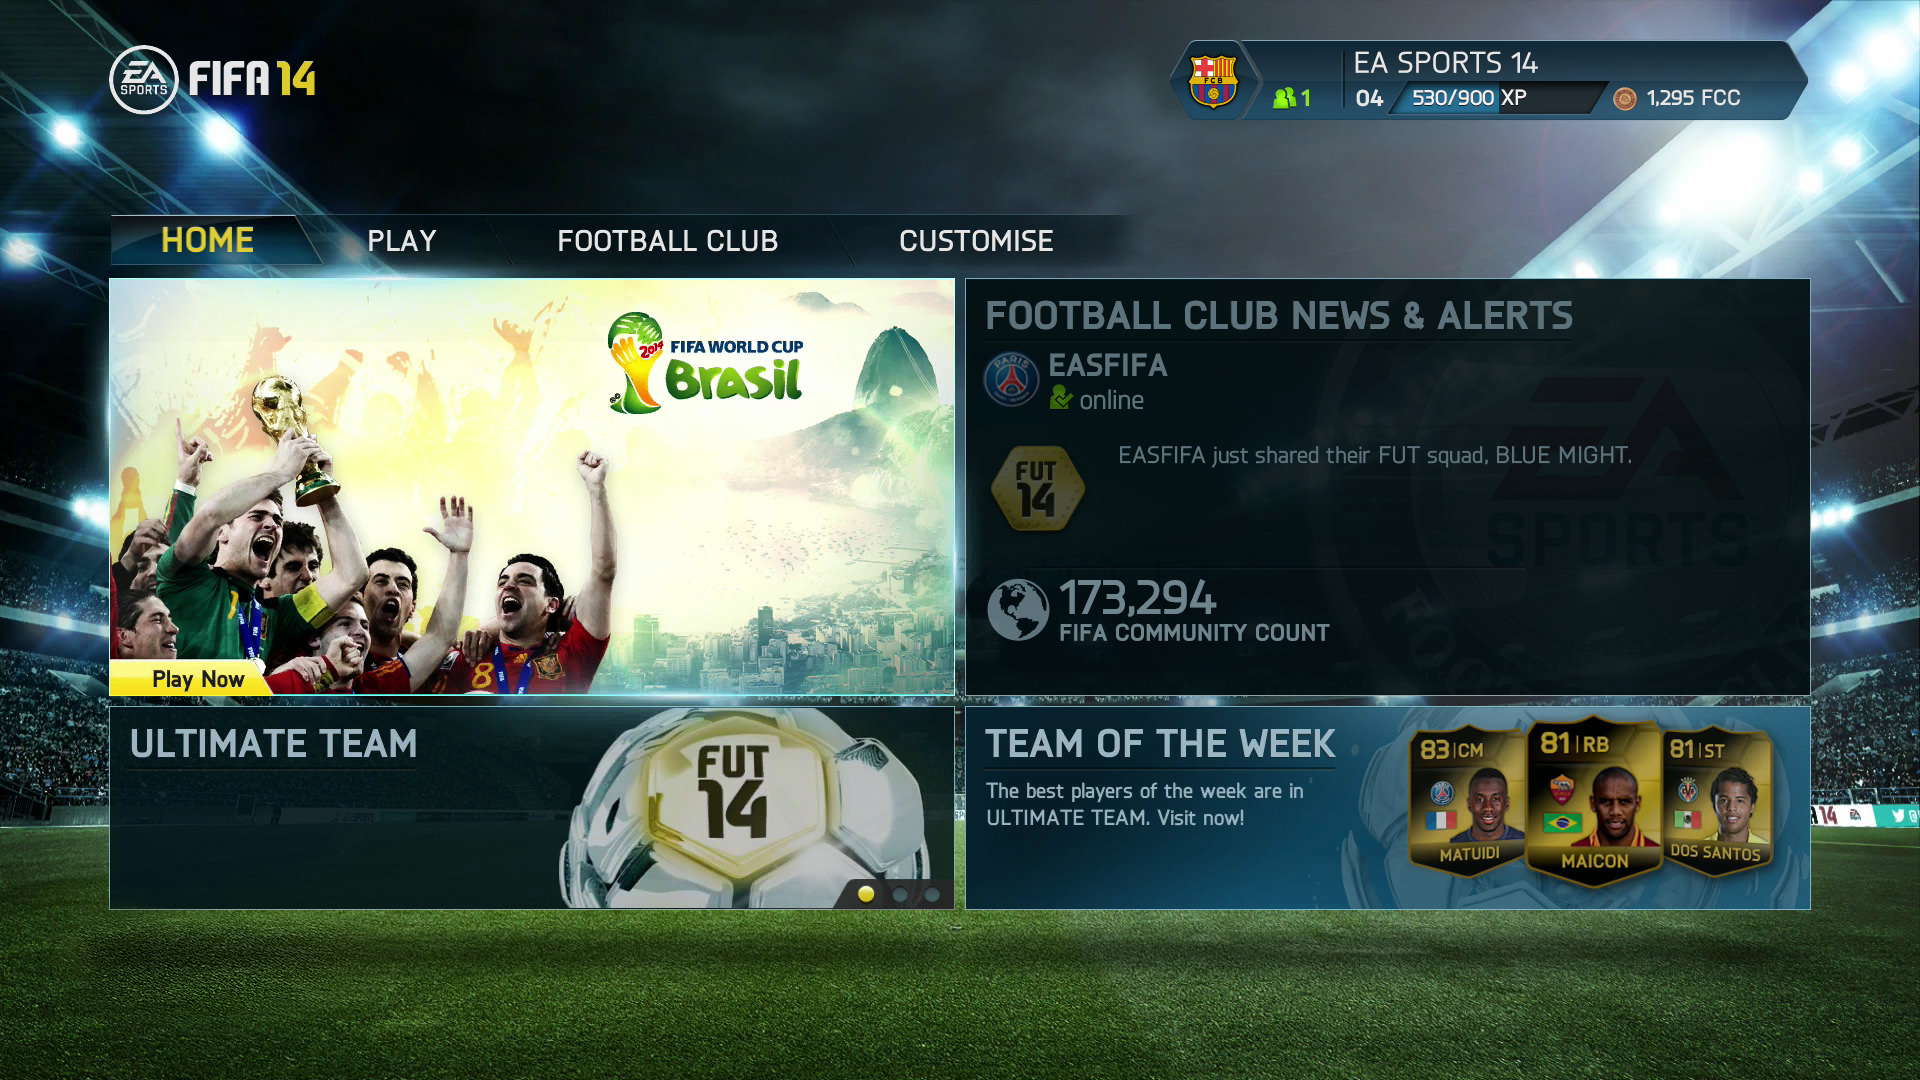 FIFA 14 Ultimate Team - 2014 World Cup Patch